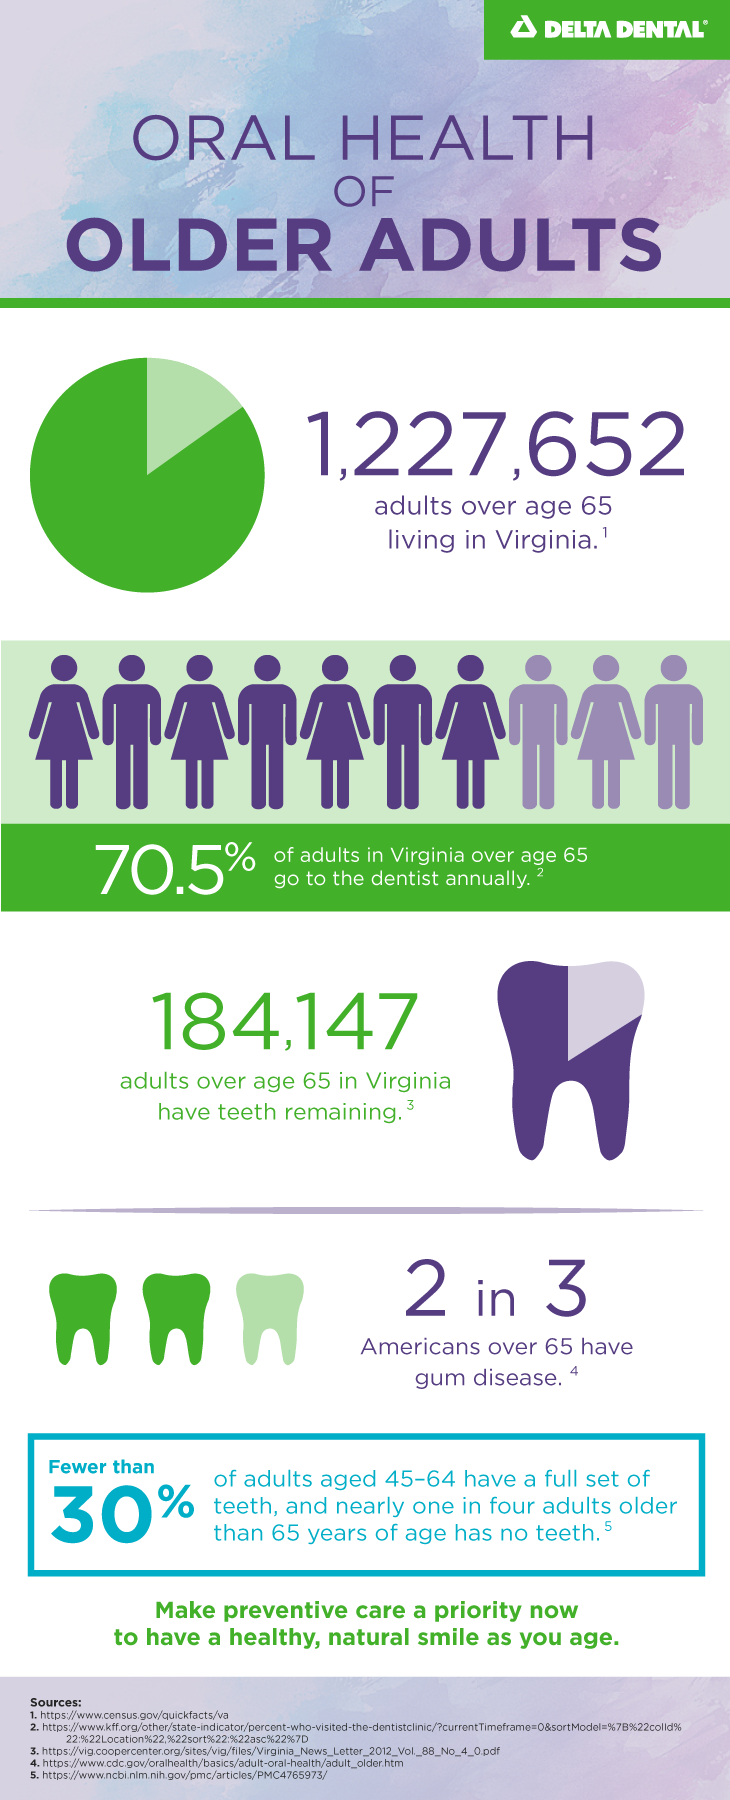 Learn what impacts a natural, healthy smile as we age, and see how Virginia stacks up when it comes to the dental health of older adults.